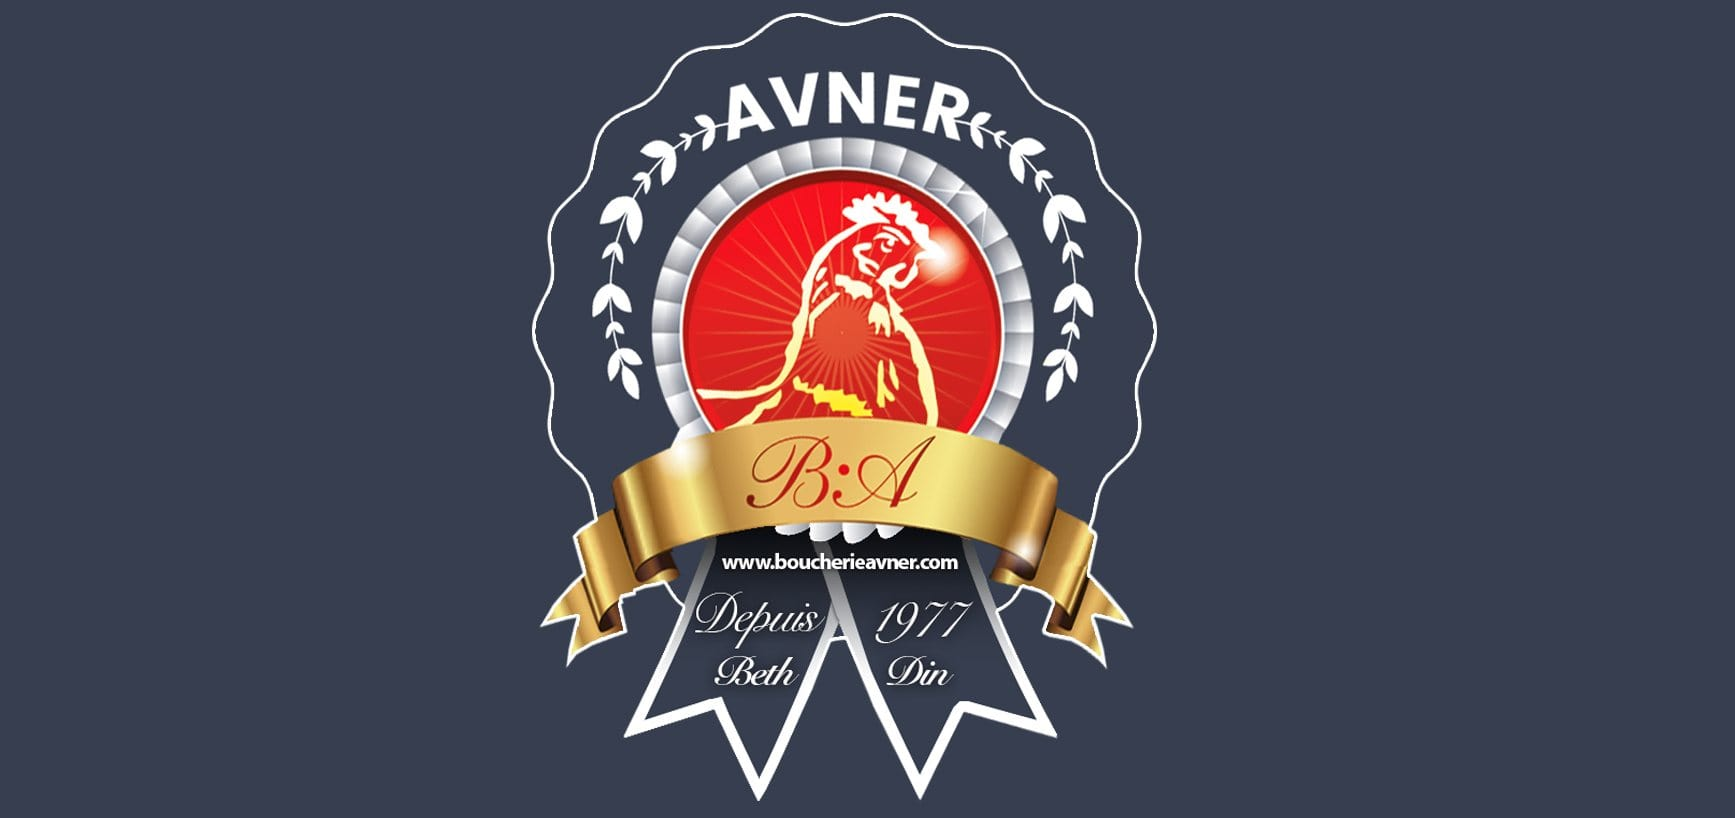 Boucherie Avner cacher